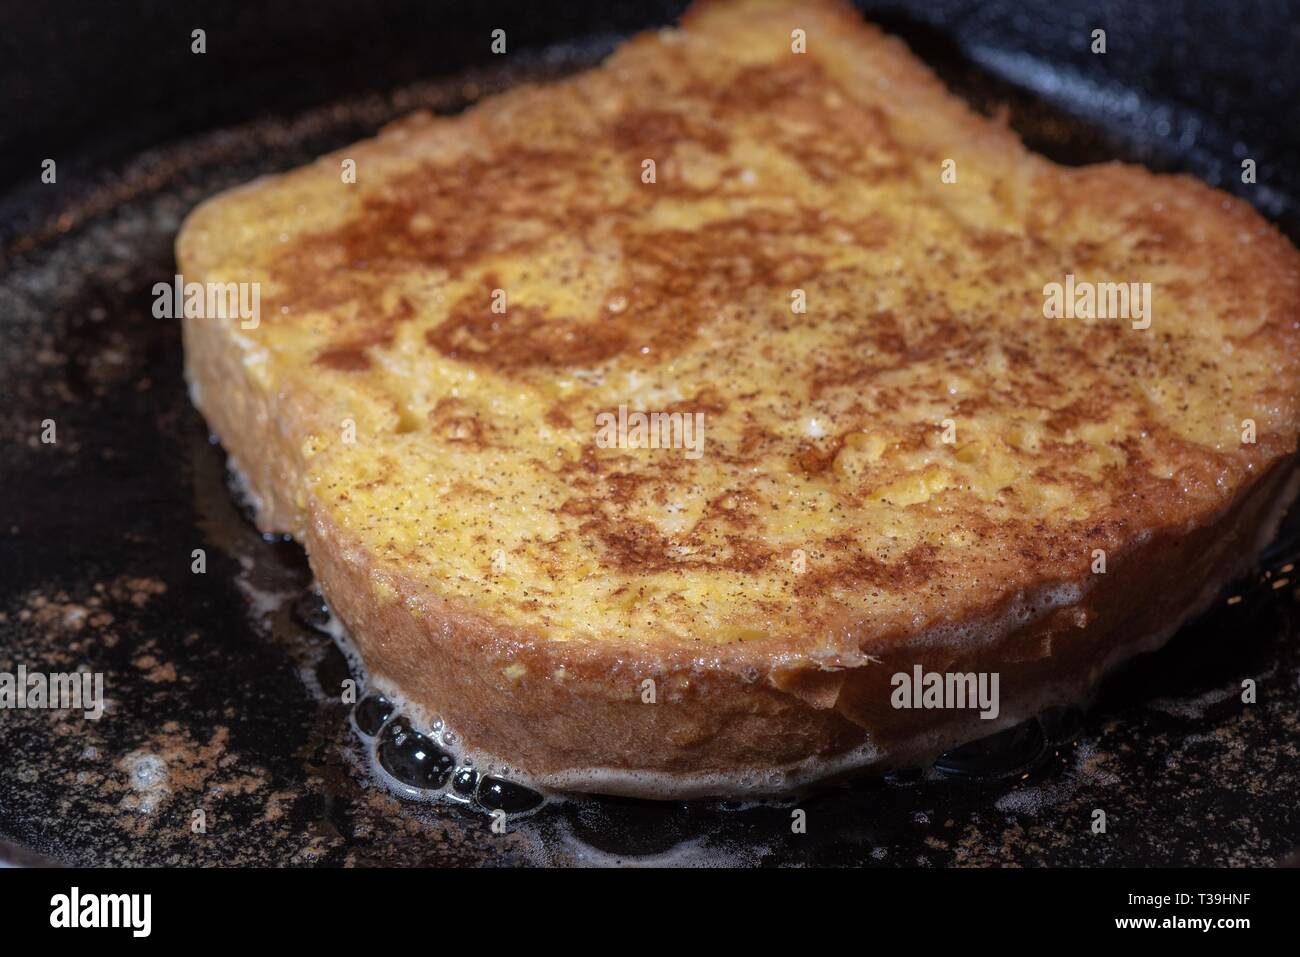 Making breakfast French toast in cast iron frying pan. Stock Photo